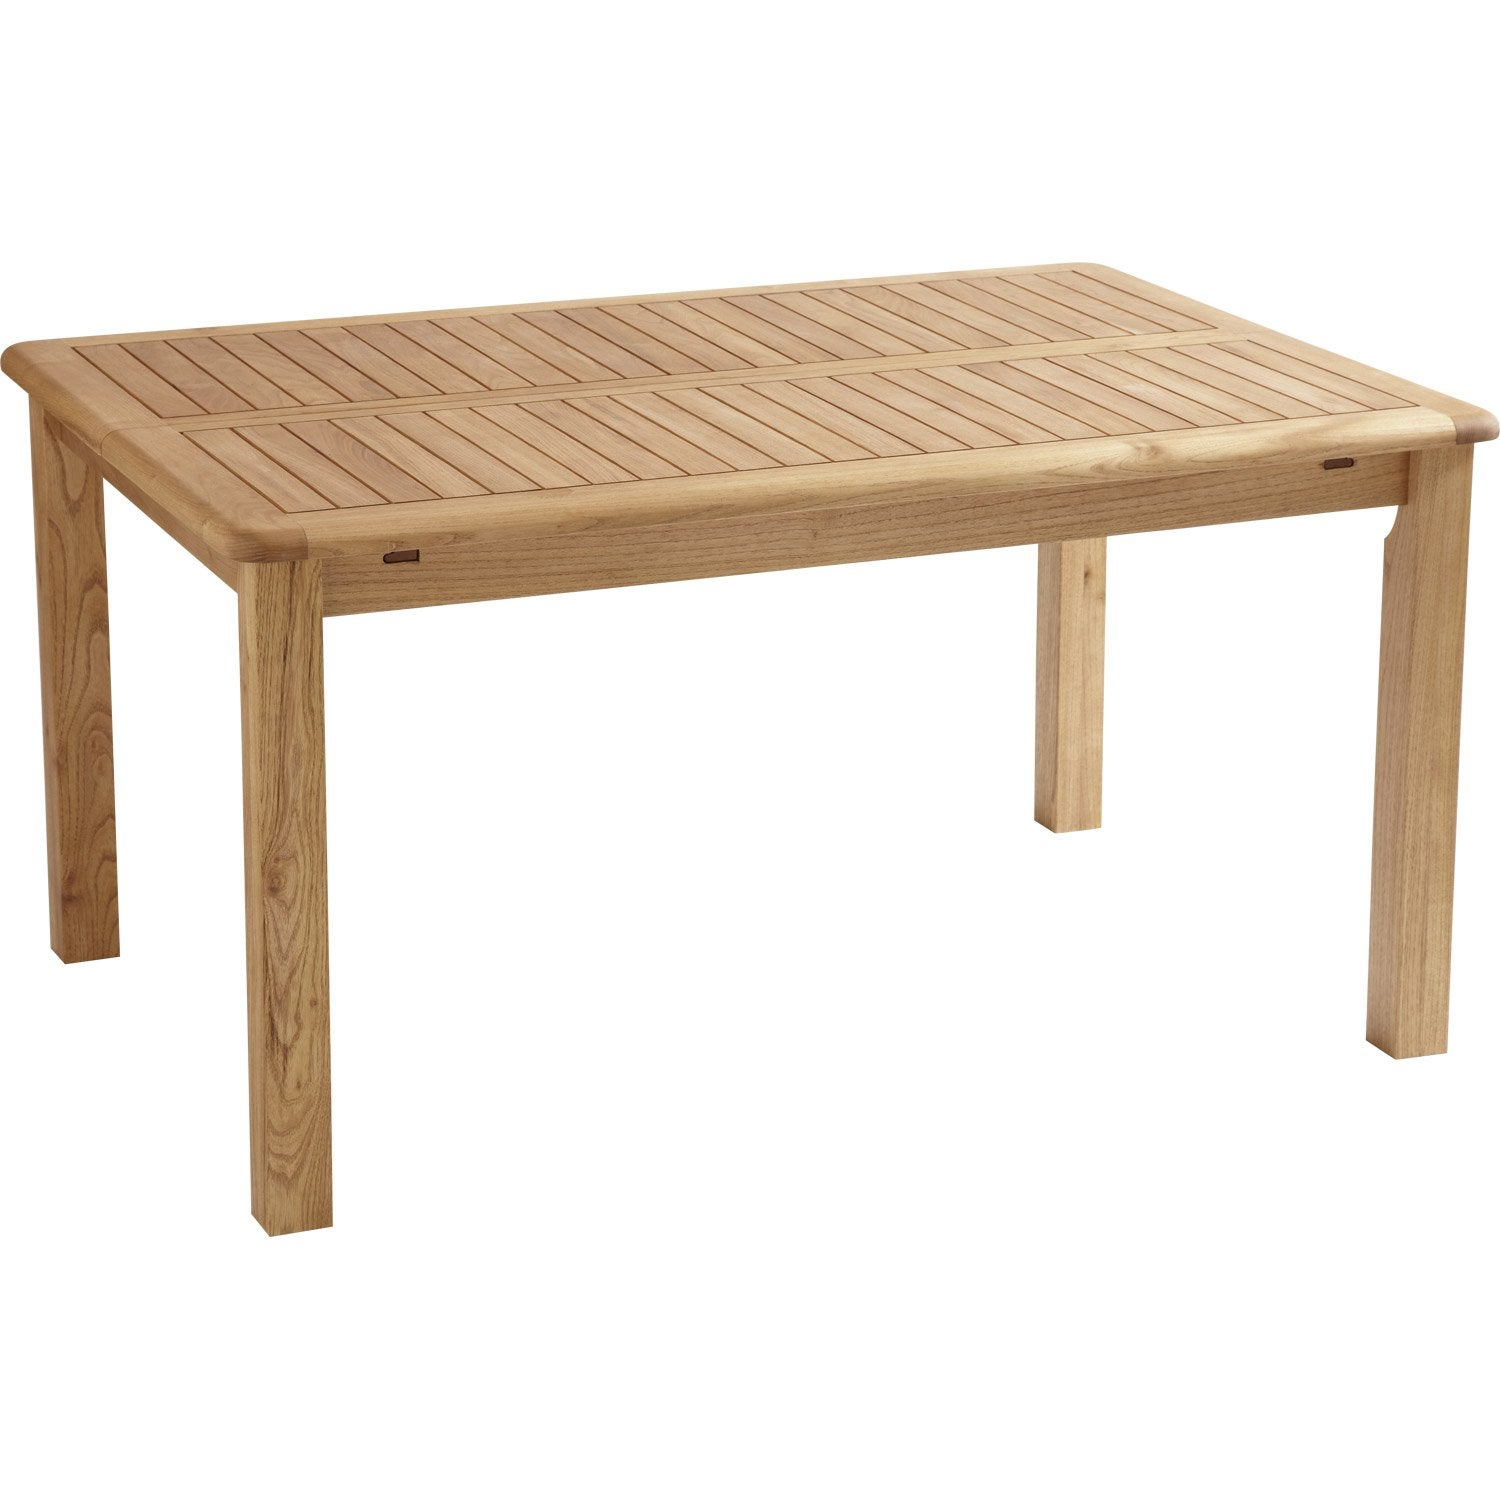 Dimension table salon de jardin - Leroy merlin table jardin ...